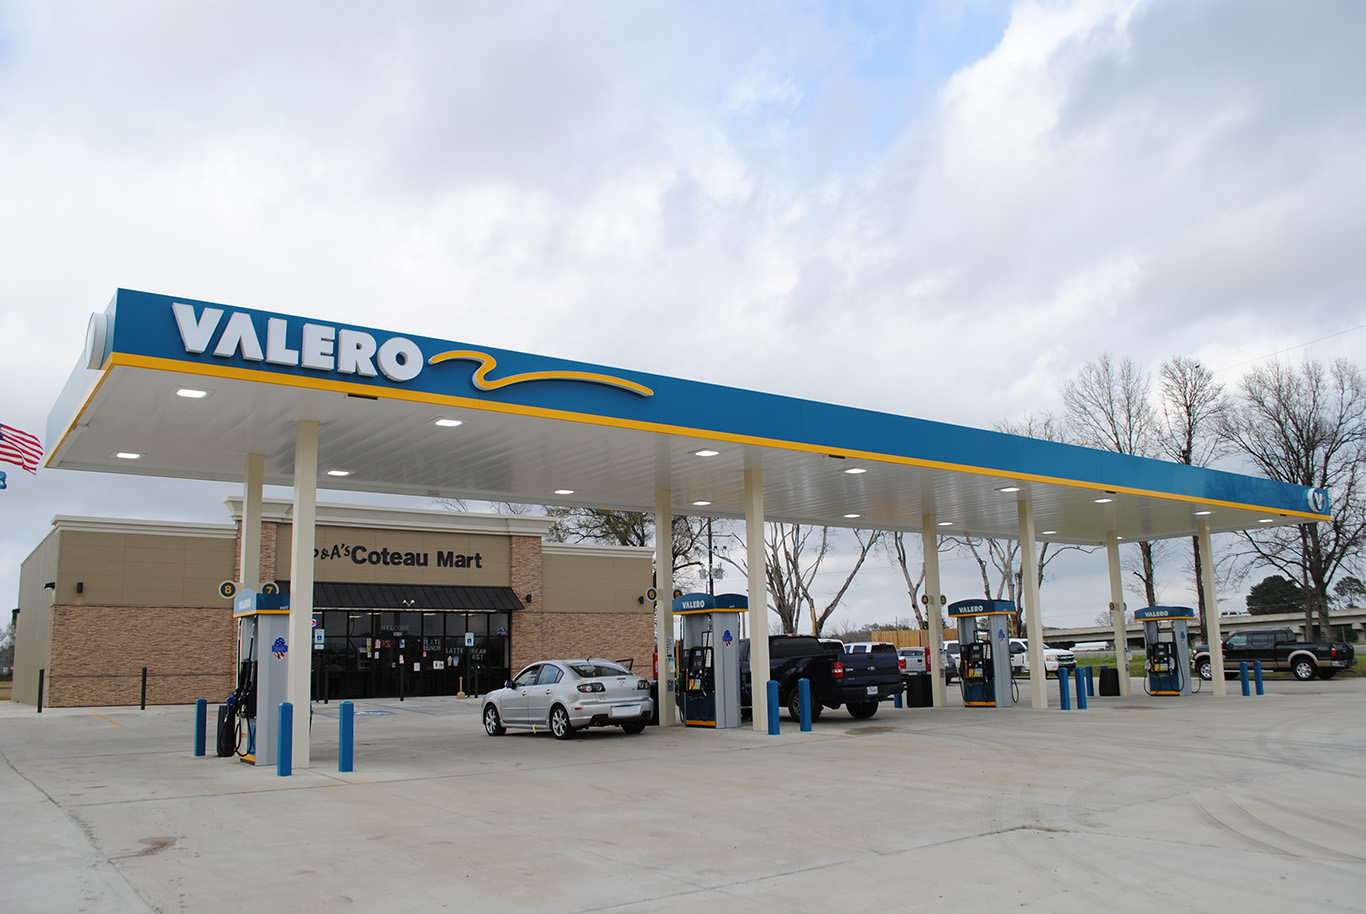 Valero and Nustar select Biofriendly